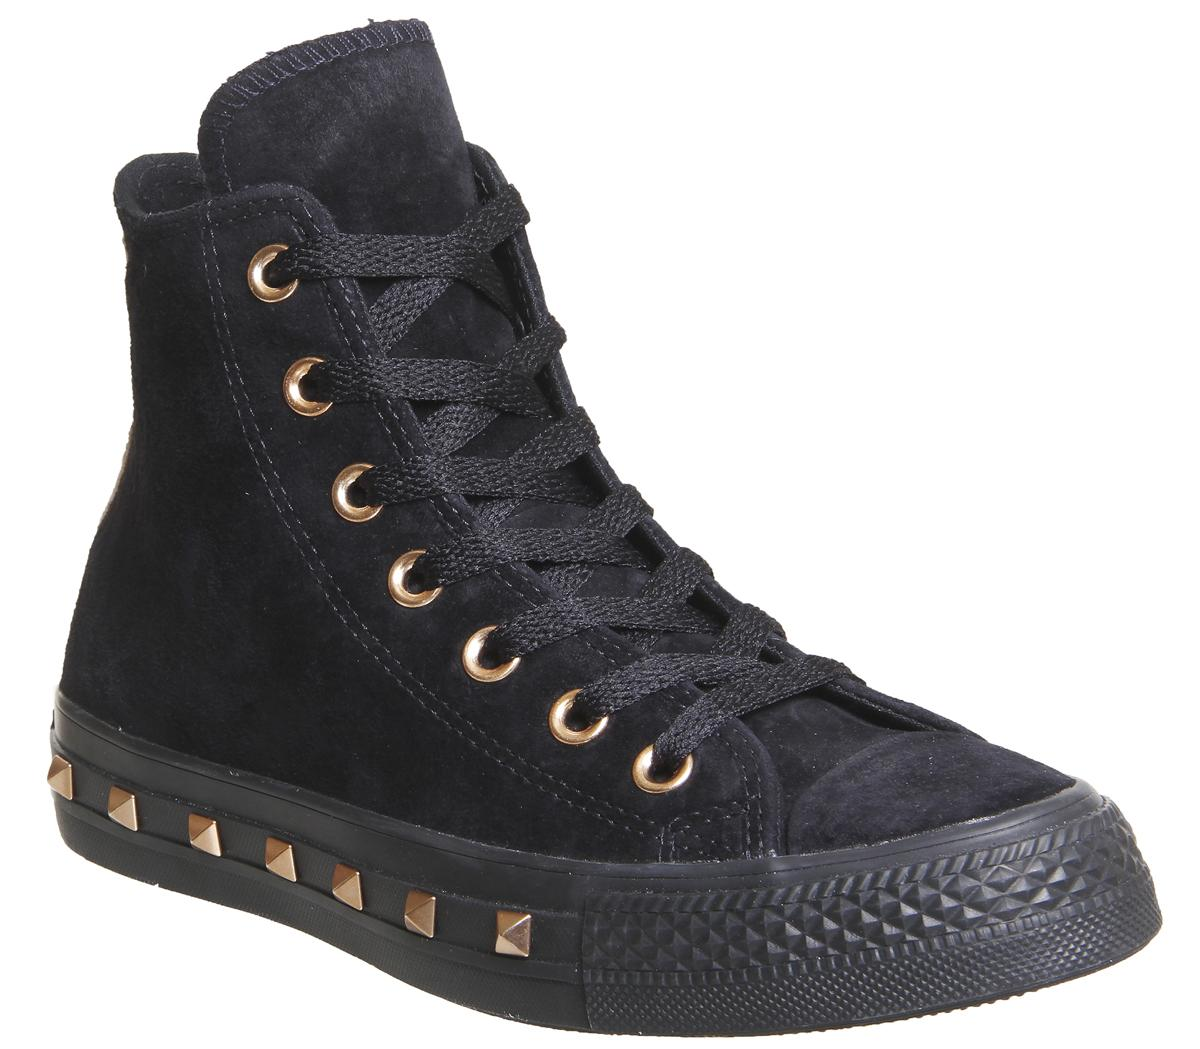 CONVERSE Shoes Women Shoes /'ALL STAR HI /'Studs Leather Sneakers Original New